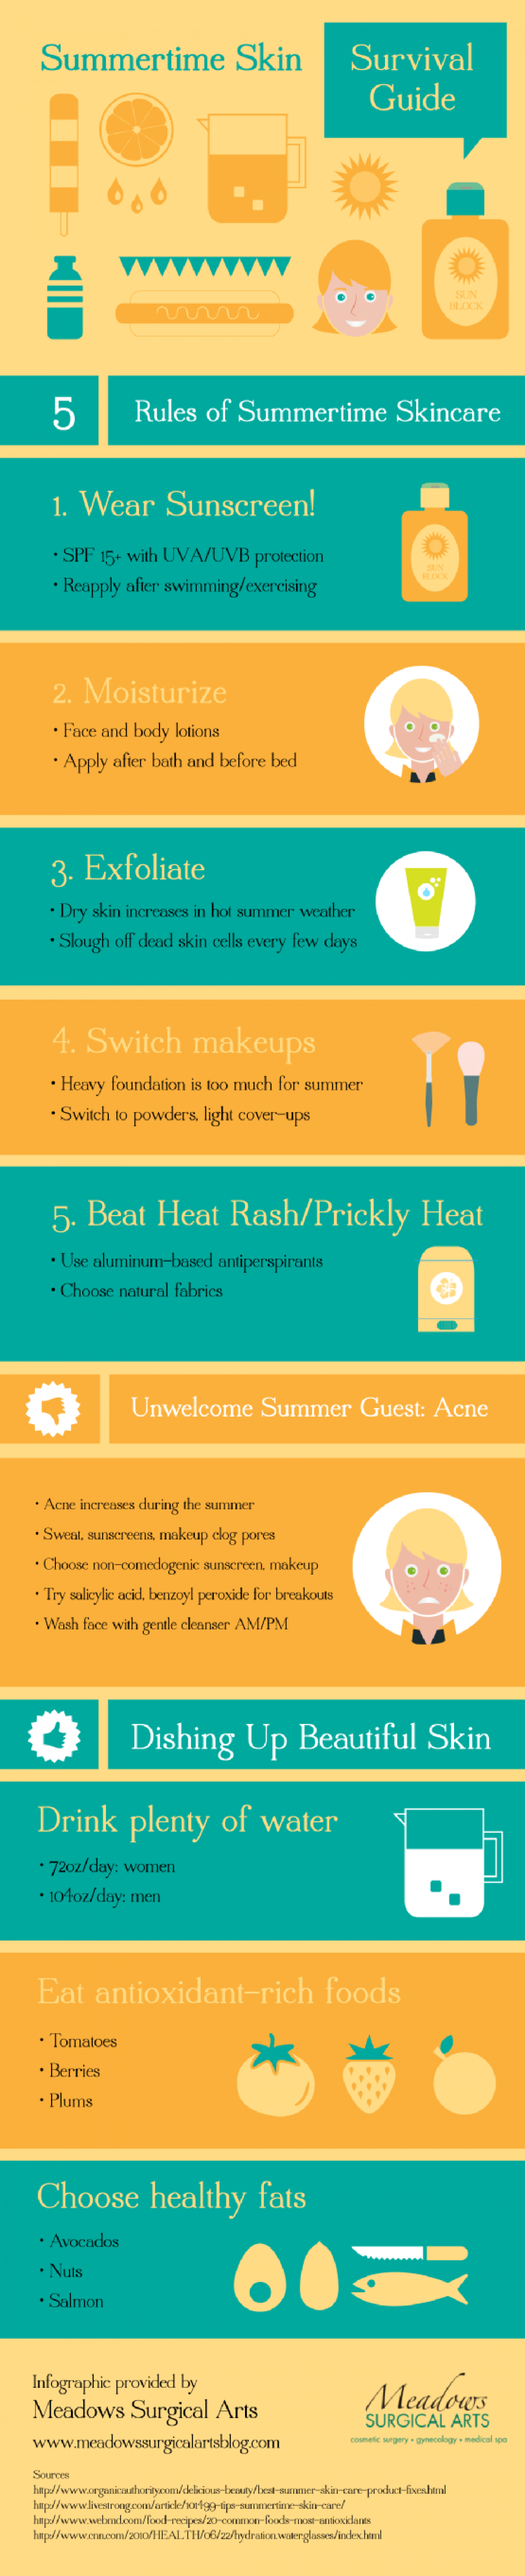 Summertime Skin Survival Guide Infographic